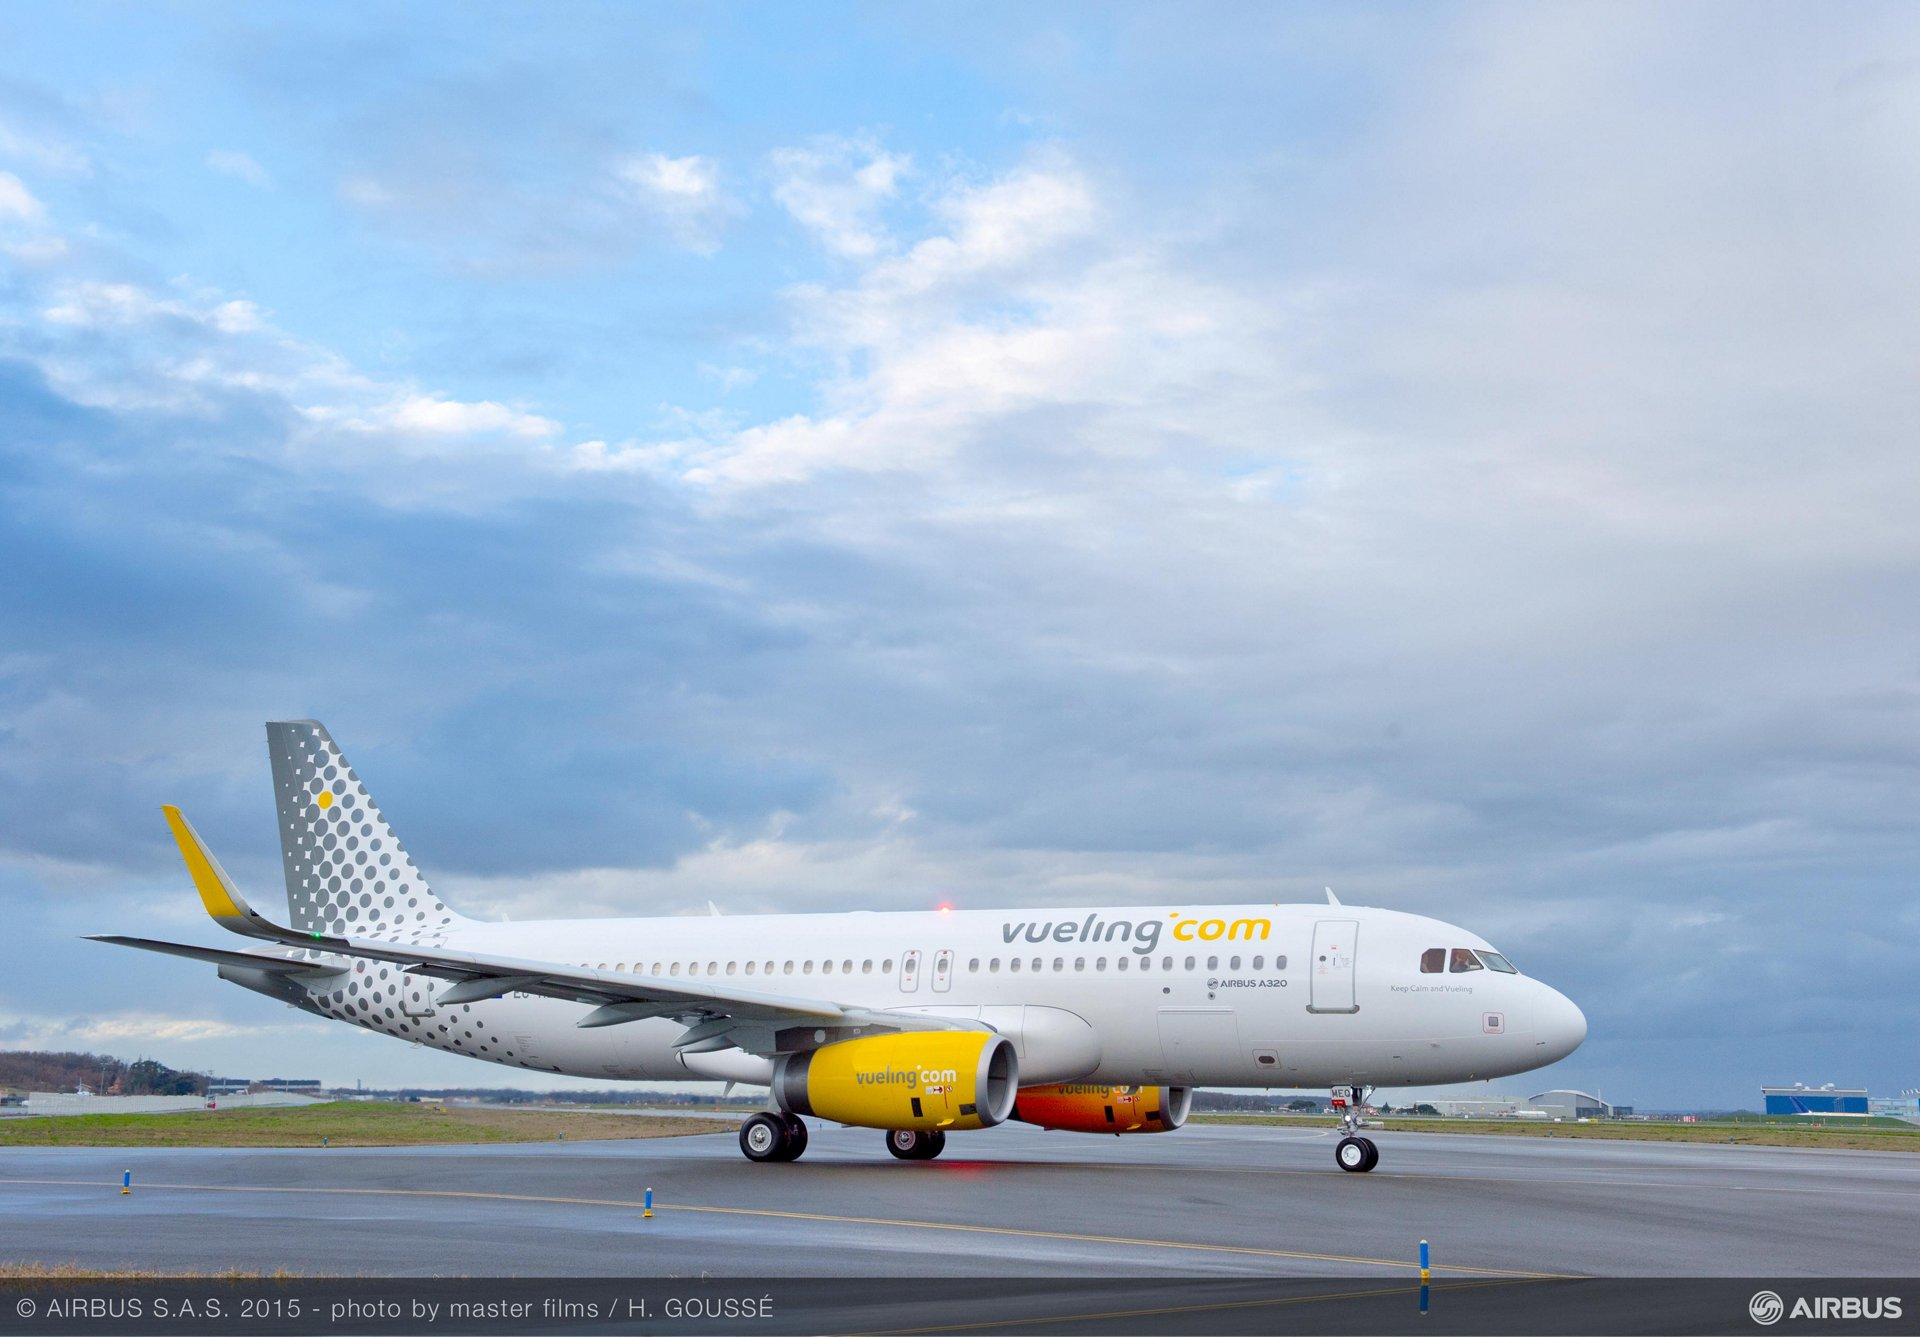 Vueling A320_taxiing